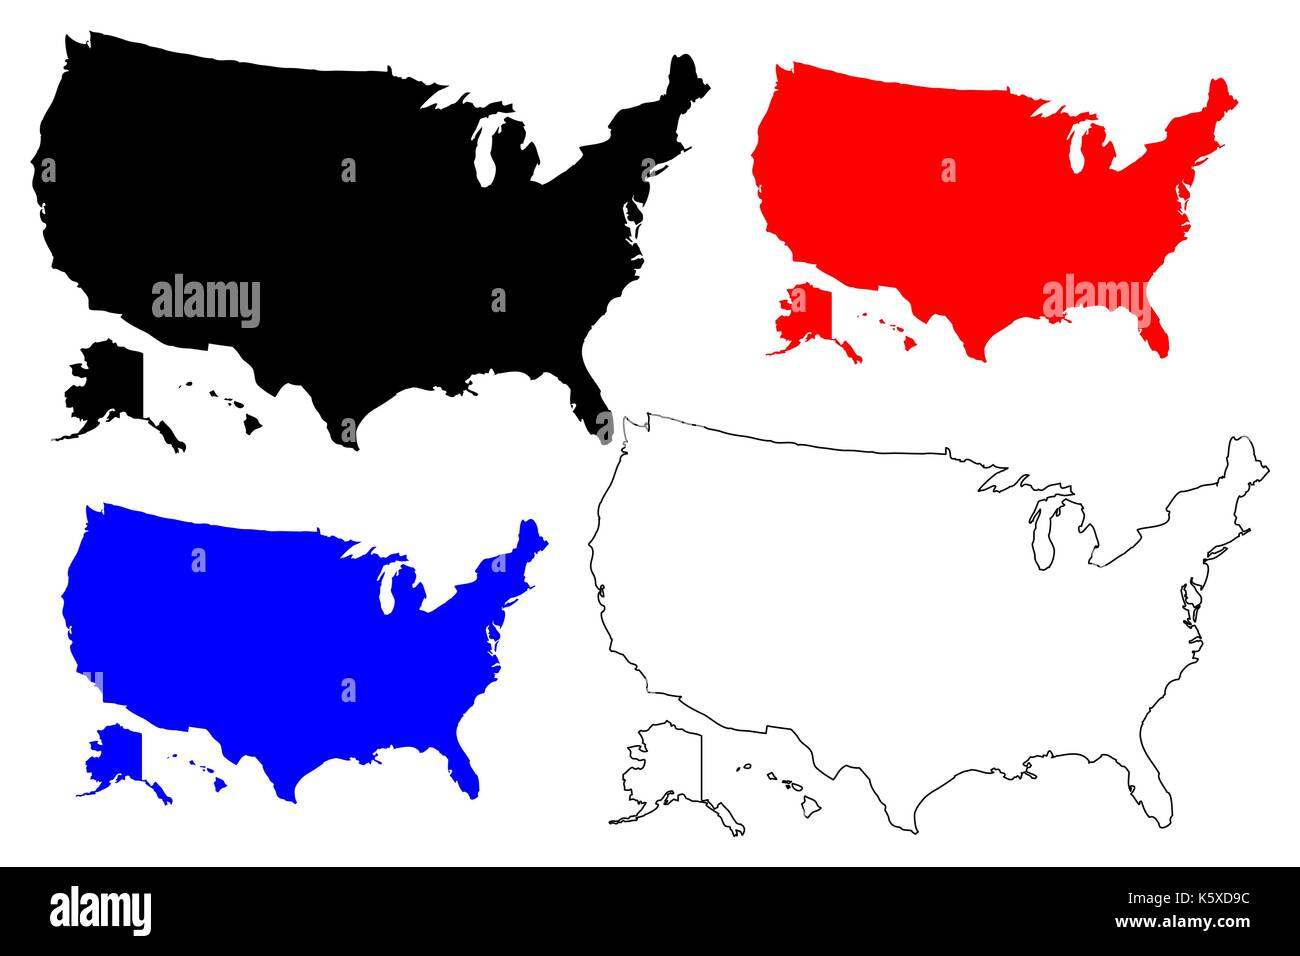 united states of america map vector ilration scribble sketch usa stock image